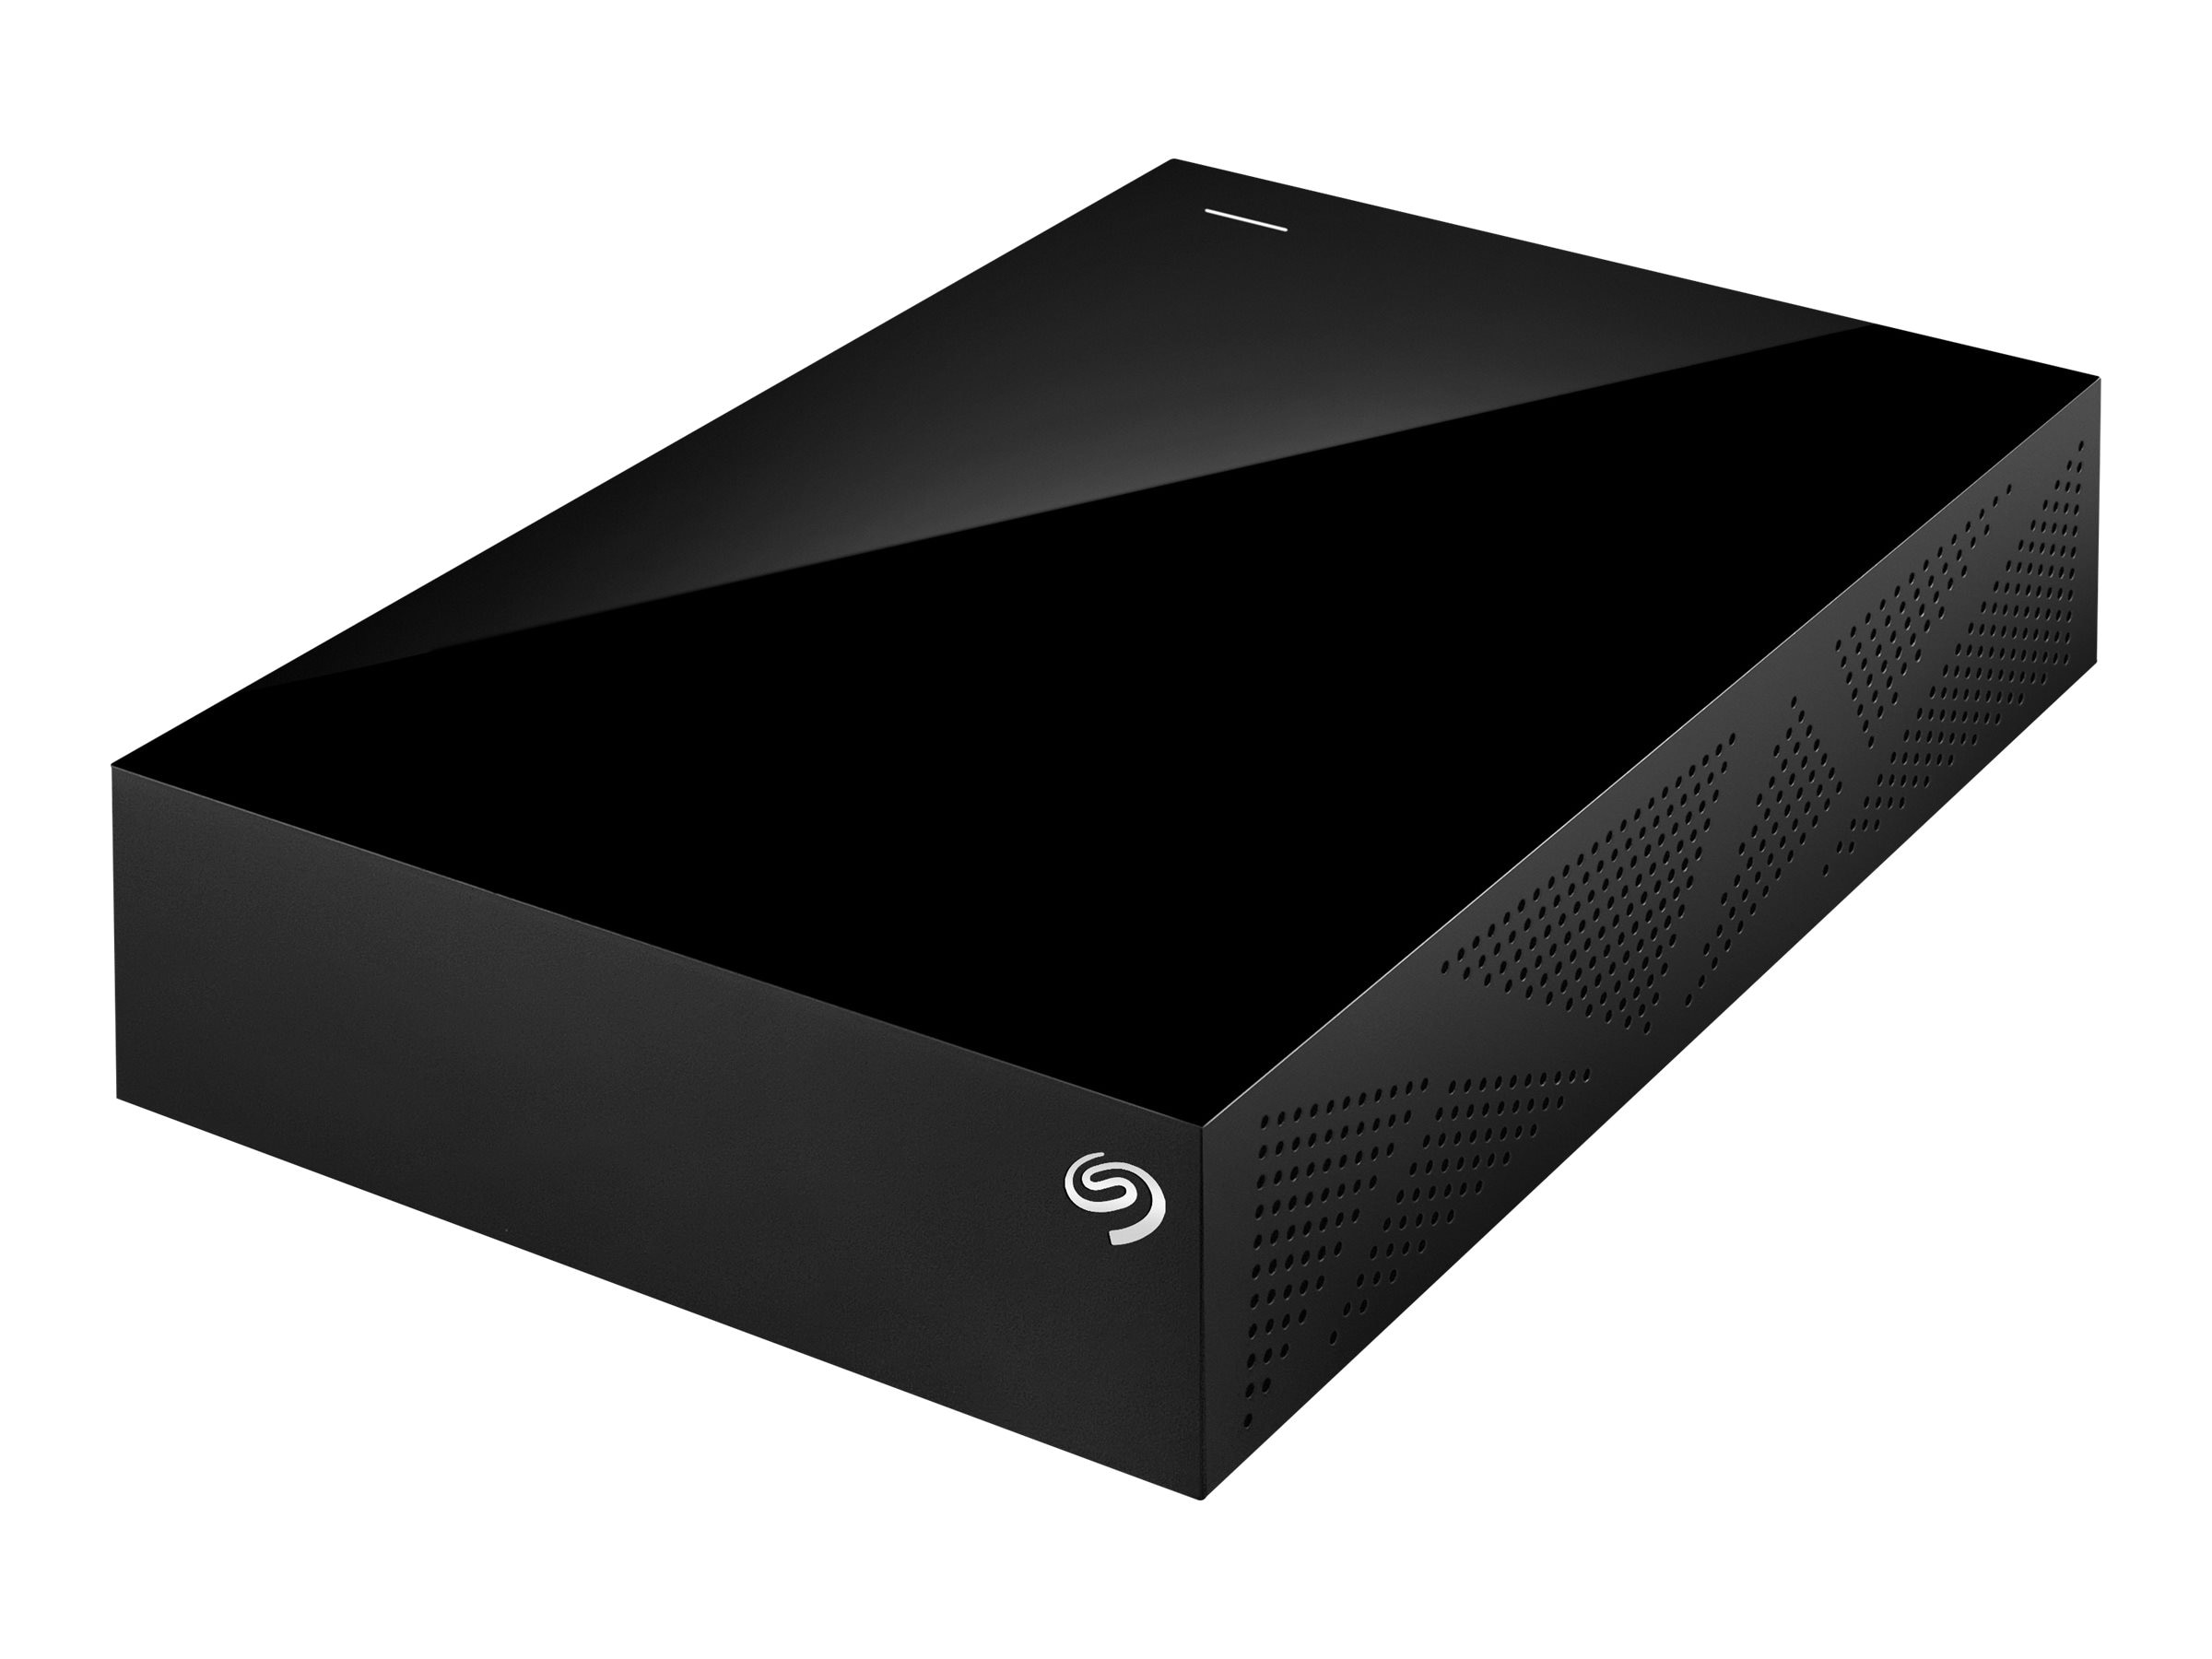 Seagate 5TB Backup Plus USB 3.0 3.5 Desktop Hard Drive - Tuxedo Black, STDT5000100